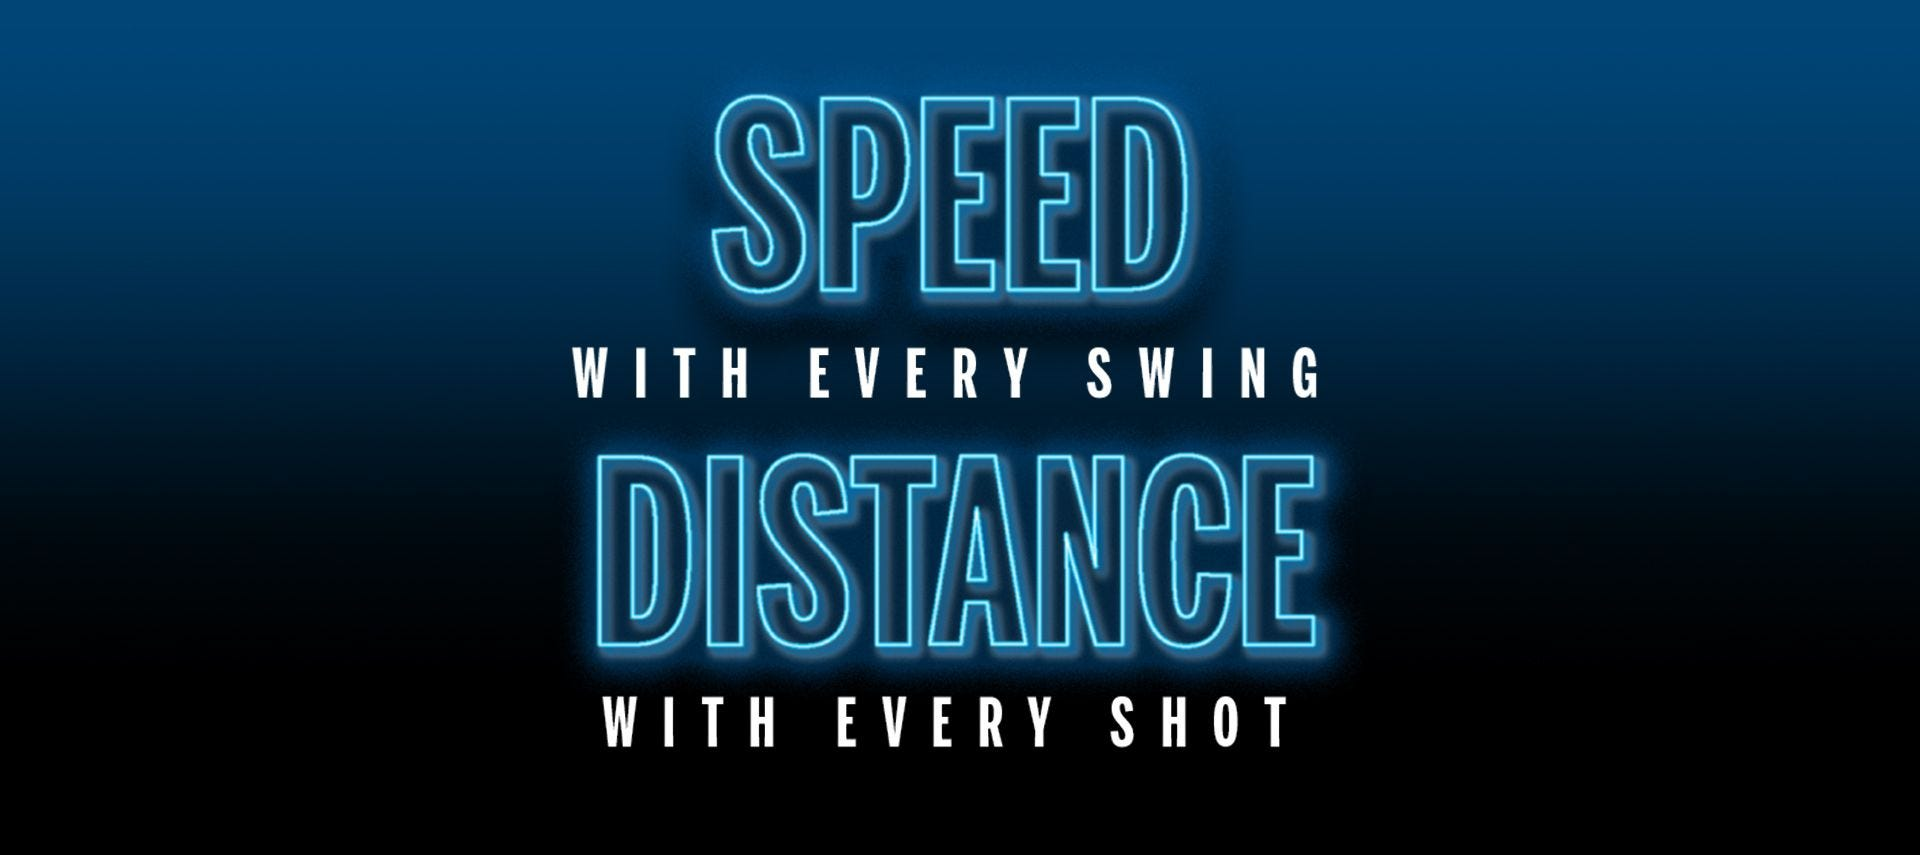 Speed with every swing, distance with every shot